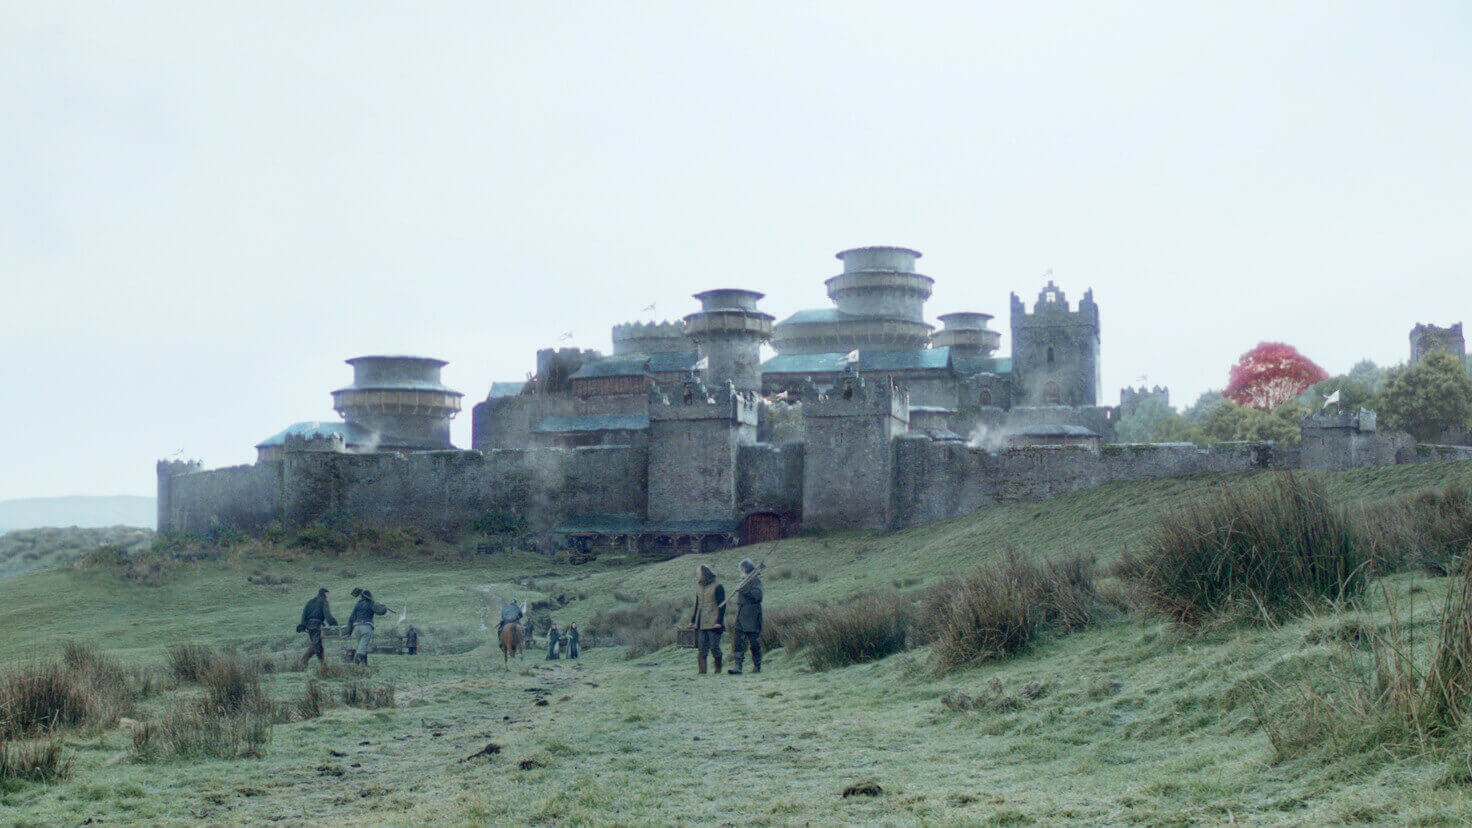 Winterfell from Game of Thrones is 3D Printed in Cement | All3DP